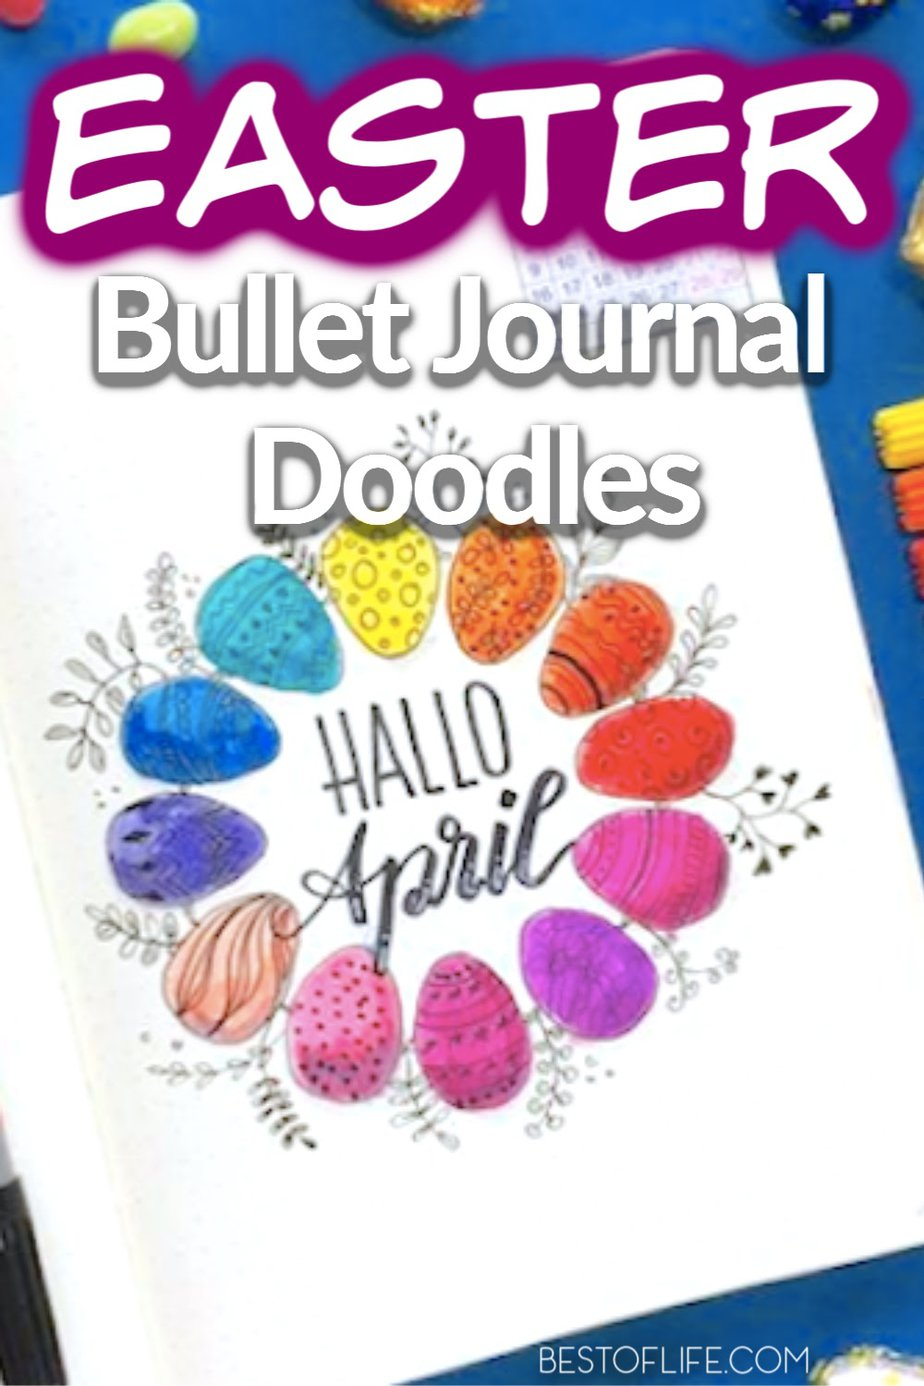 Bullet journal Easter doodles can help you get in the holiday spirit and are creative DIY ways to personalize your journal layouts. Easter Bullet Journal Cover | Easter Bullet Journal Themes | Bullet Journal Spread Ideas | Mood Tracker Bullet Journal | Bullet Journal Layouts | Organization for Easter | Spring Bullet Journals #easter #bujo